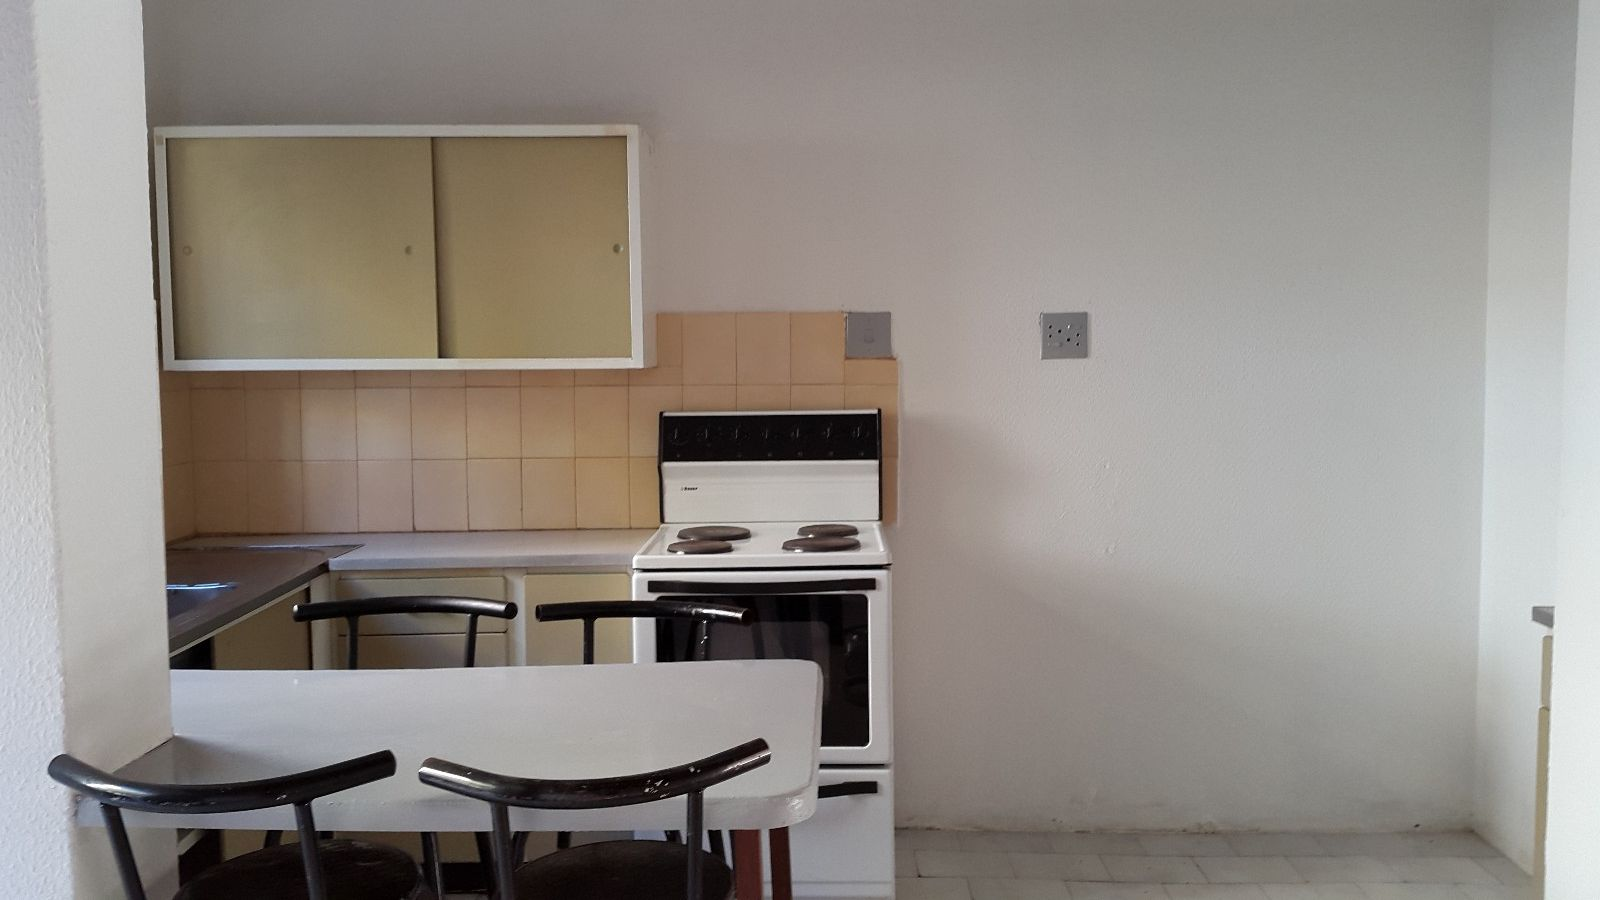 Apartment in Central - Macoriena__A13_023.jpg